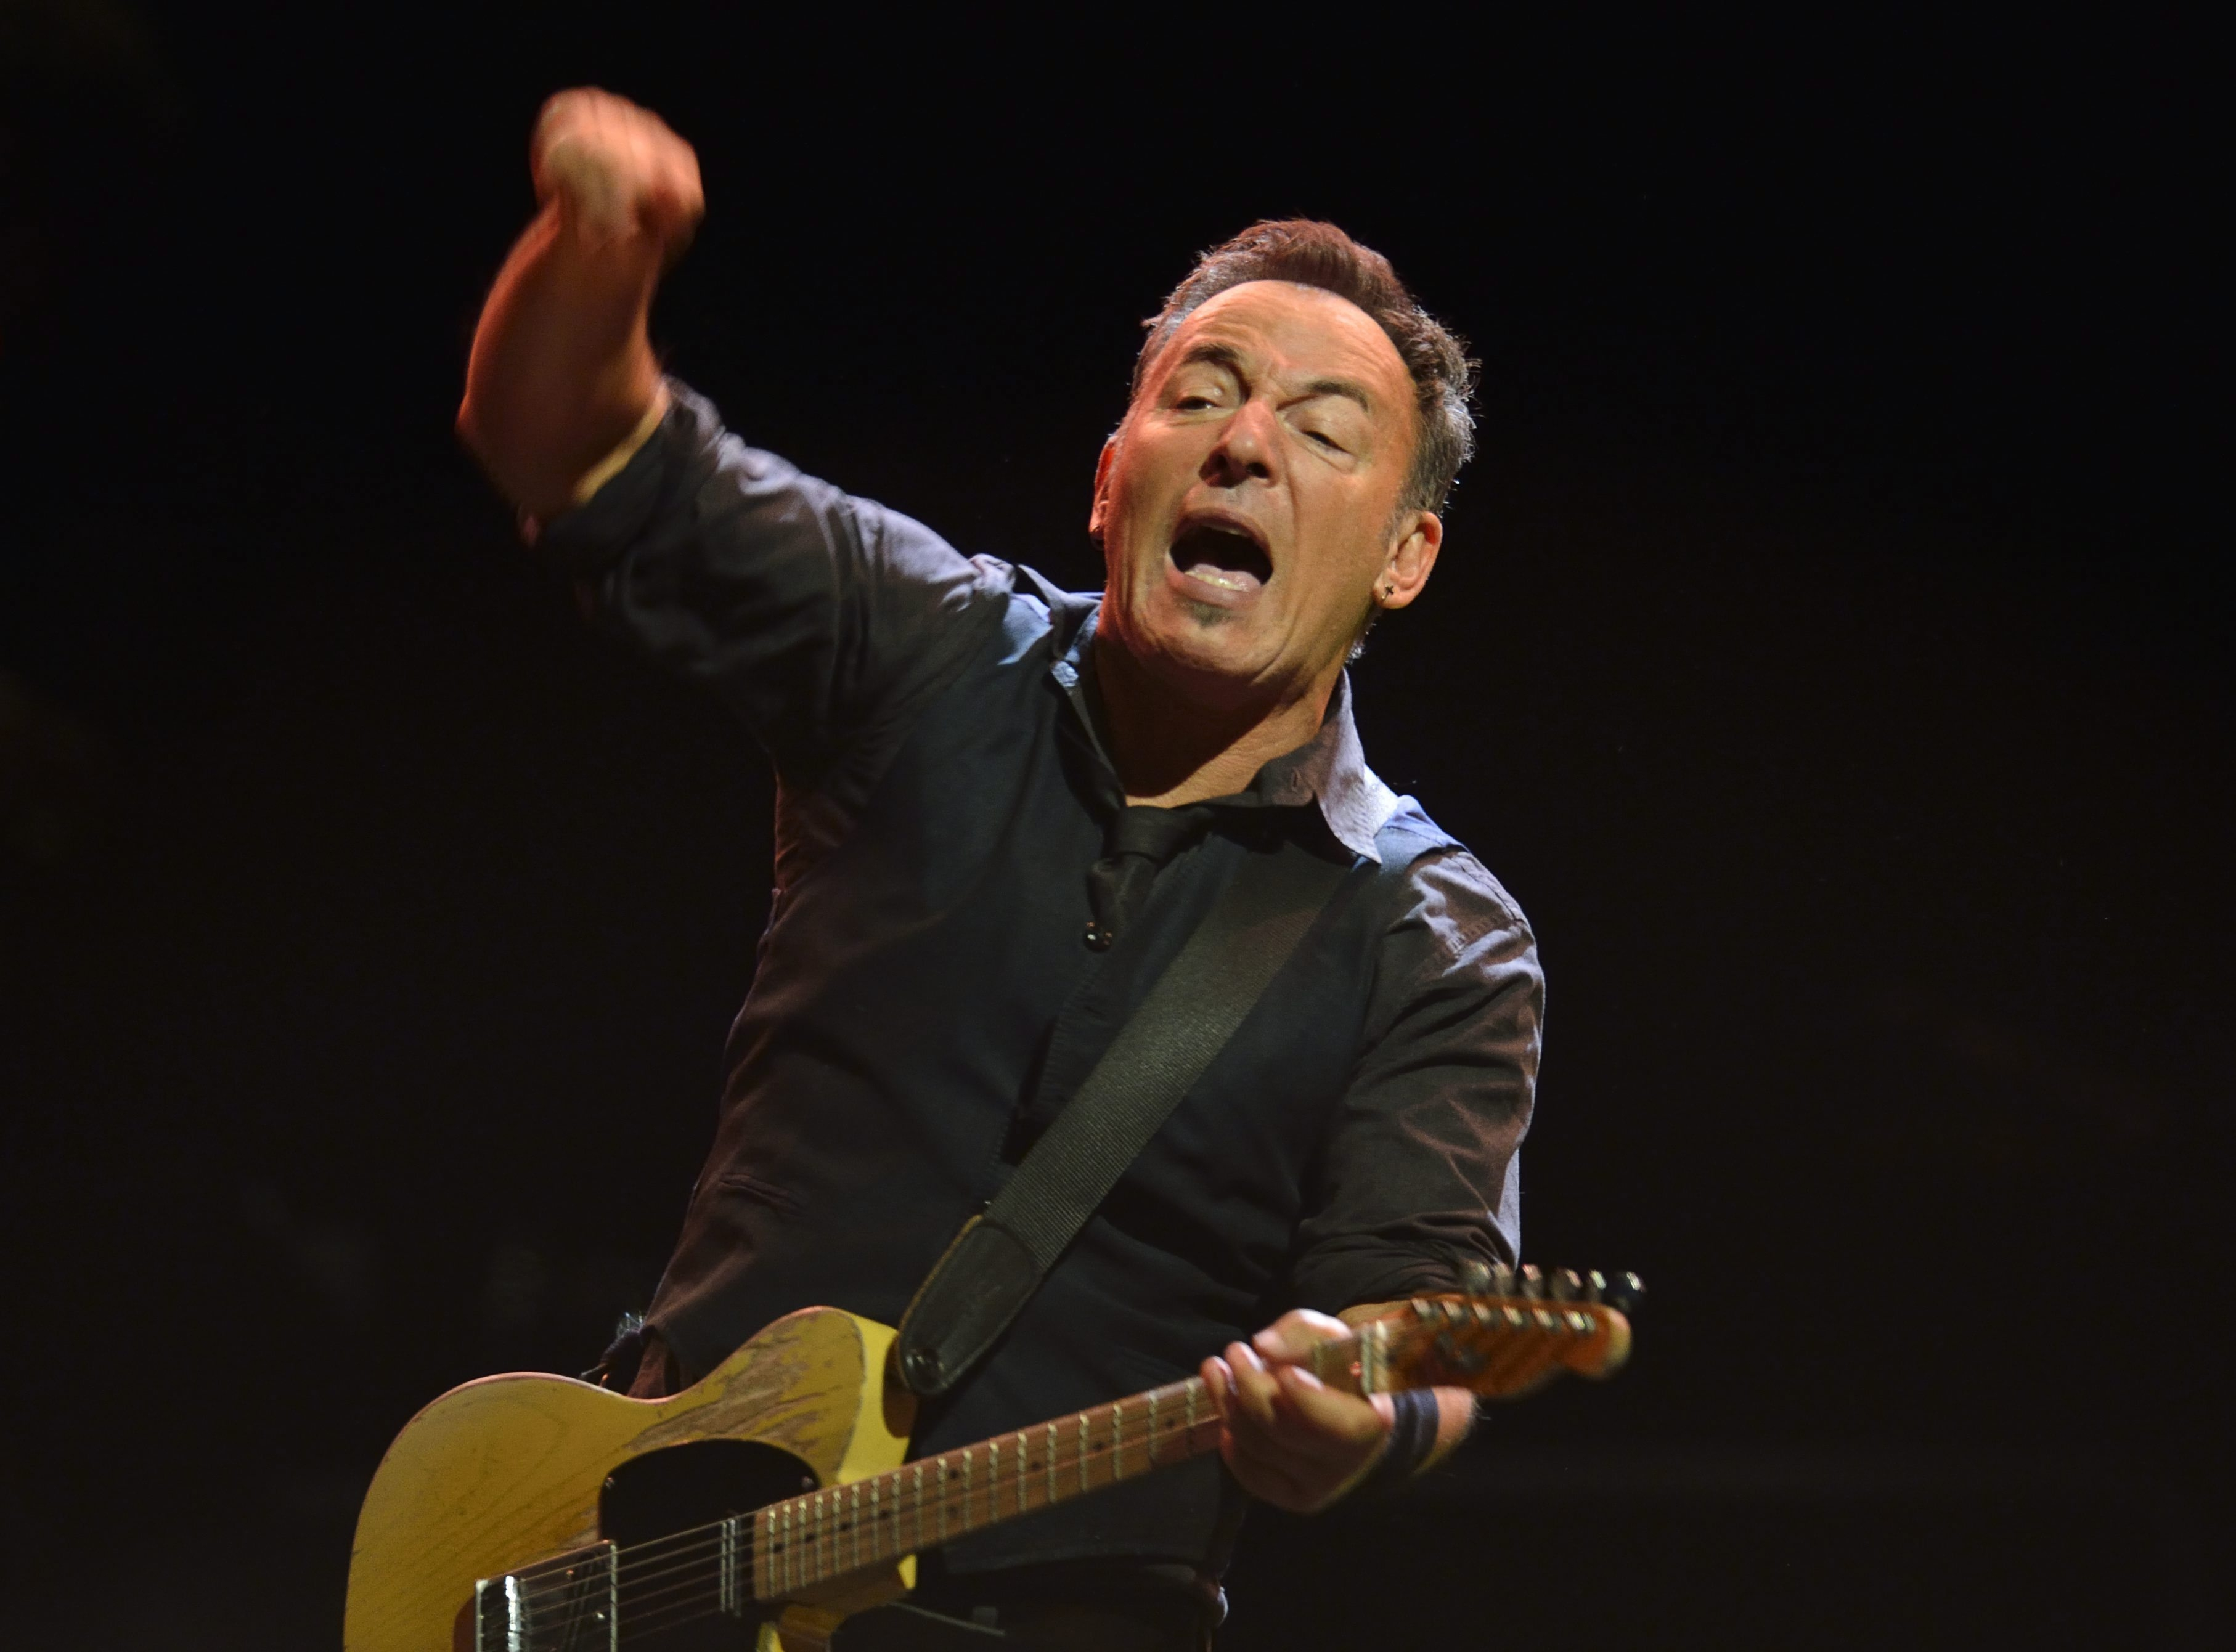 """Bruce Springsteen, seen in a file photo, dedicated """"American Skin (41 Shots)"""" to Trayvon Martin on Tuesday."""